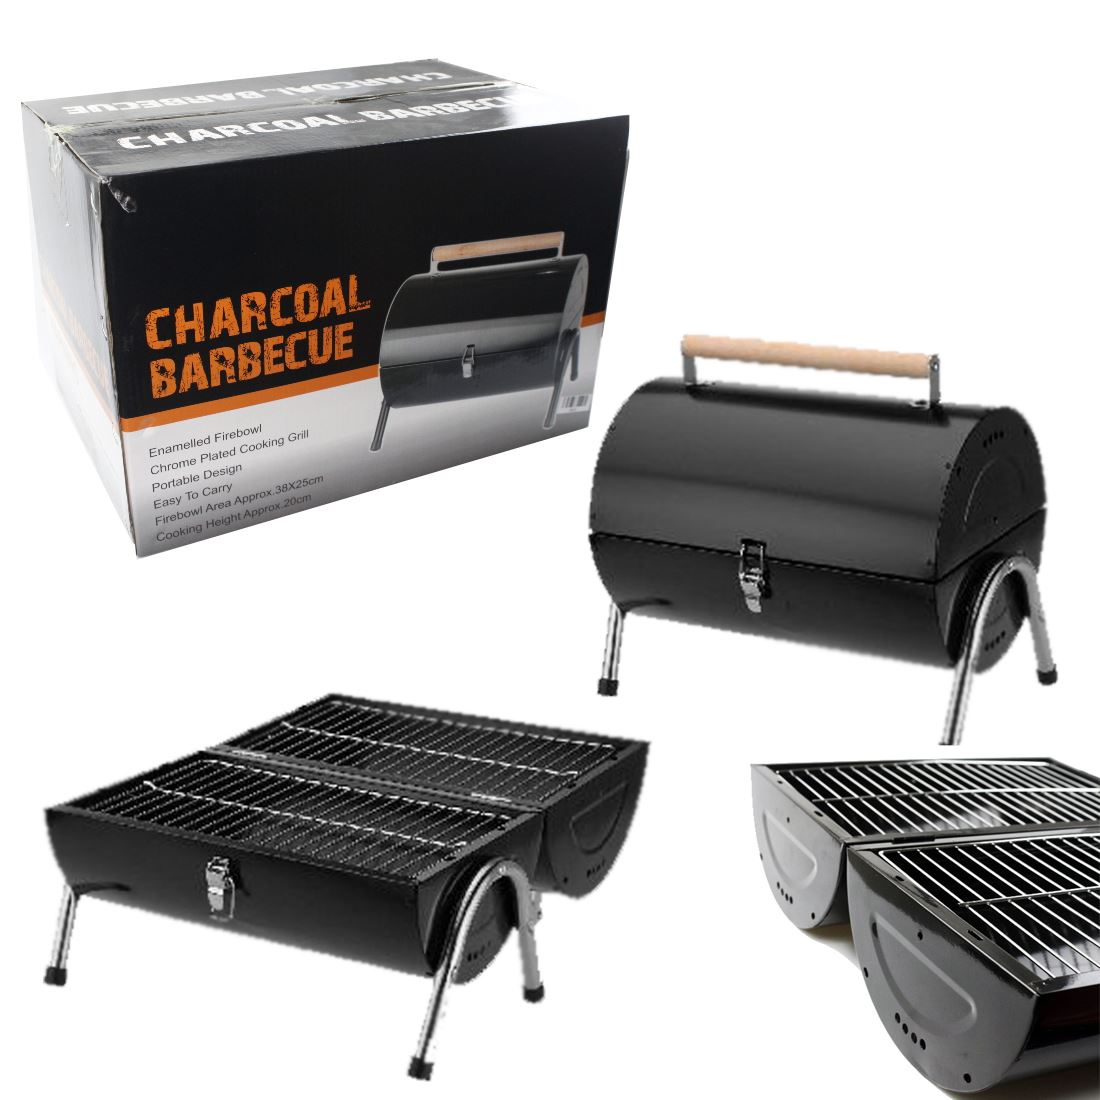 bbq barbecue charcoal grill kettle portable small foldable barrel camping garden ebay. Black Bedroom Furniture Sets. Home Design Ideas